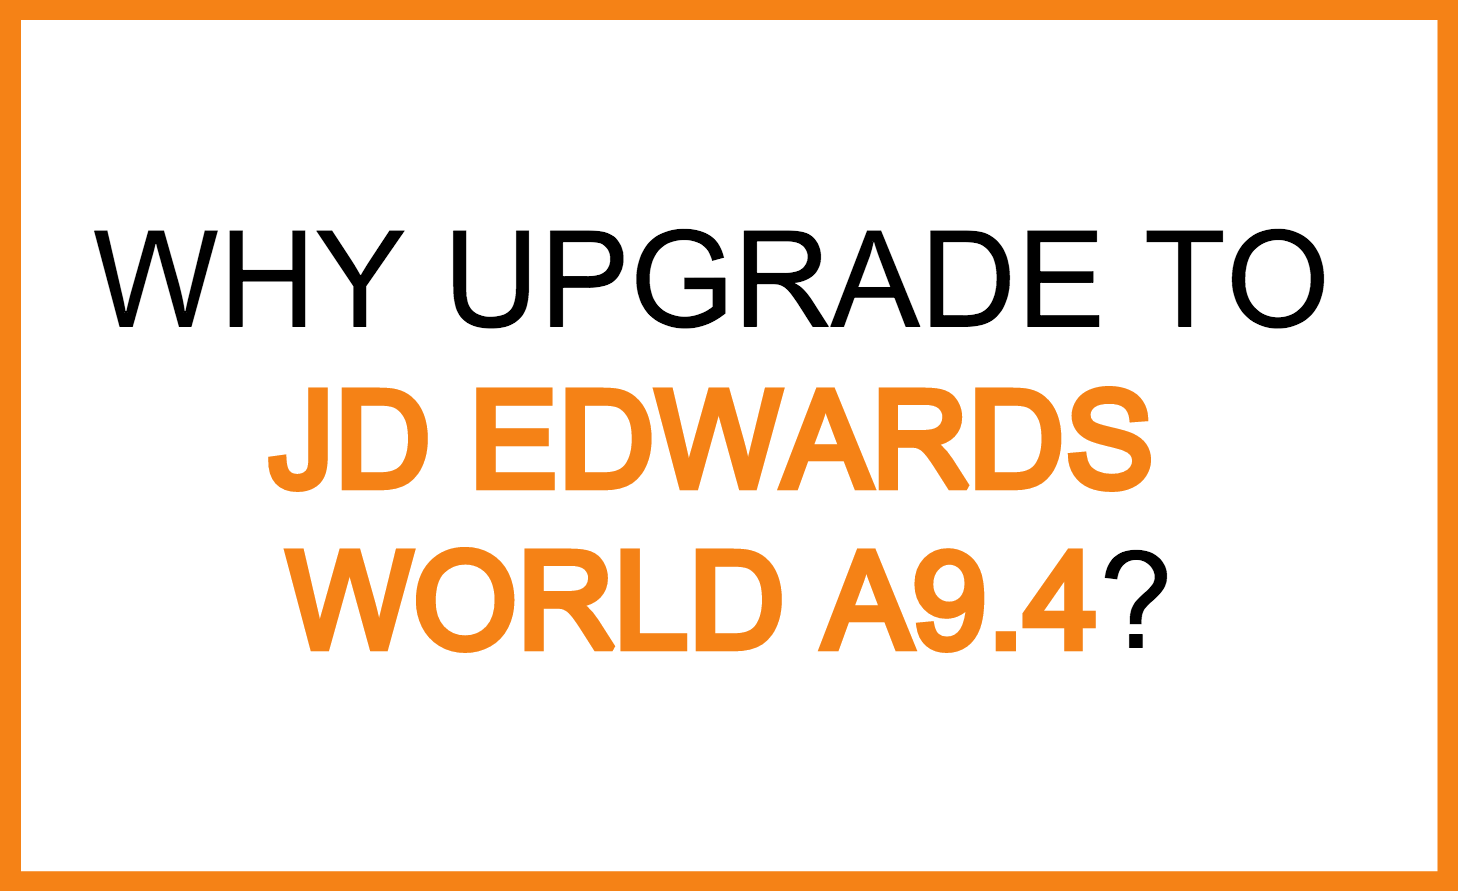 upgrade jde world A94.png